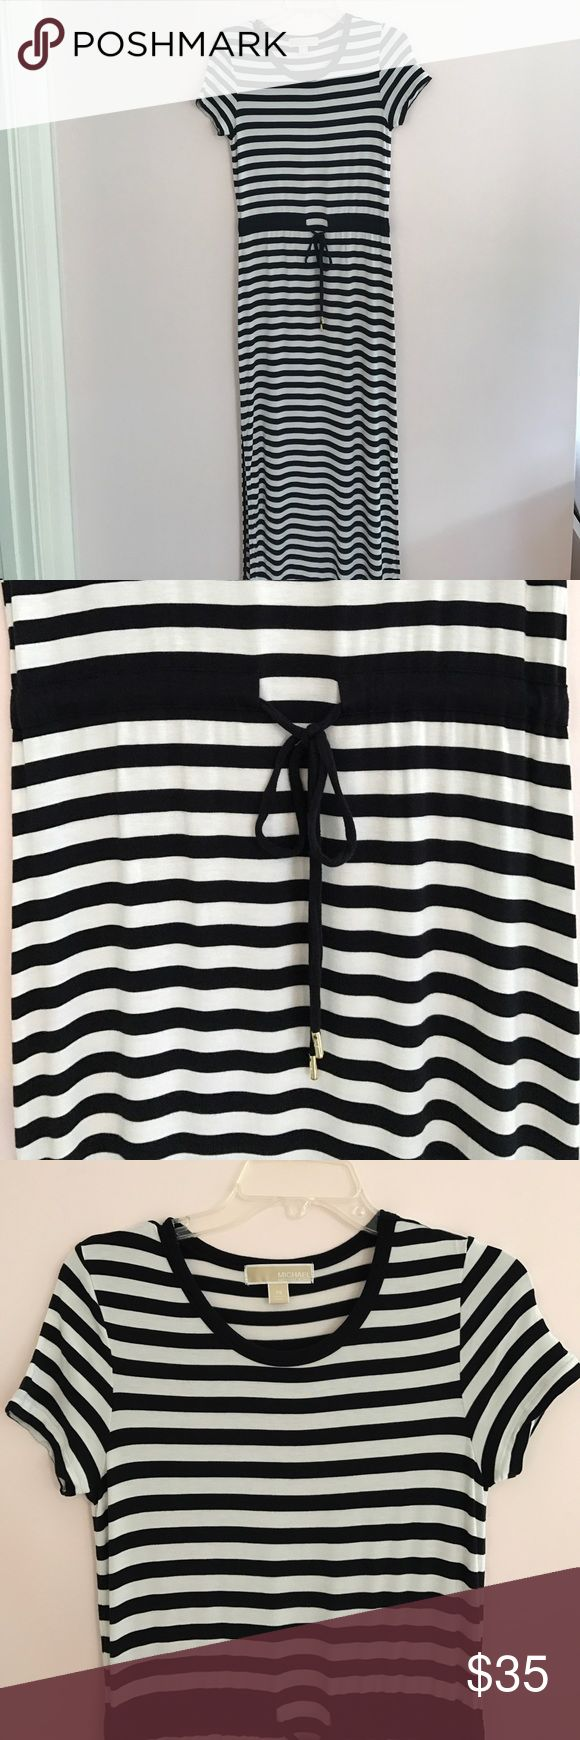 MICHAEL KORS STRIPED TSHIRT MAXI DRESS So comfortable and easy to wear! PERFECT CONDITION! Looks great with wedges and sandals! MICHAEL Michael Kors Dresses Maxi